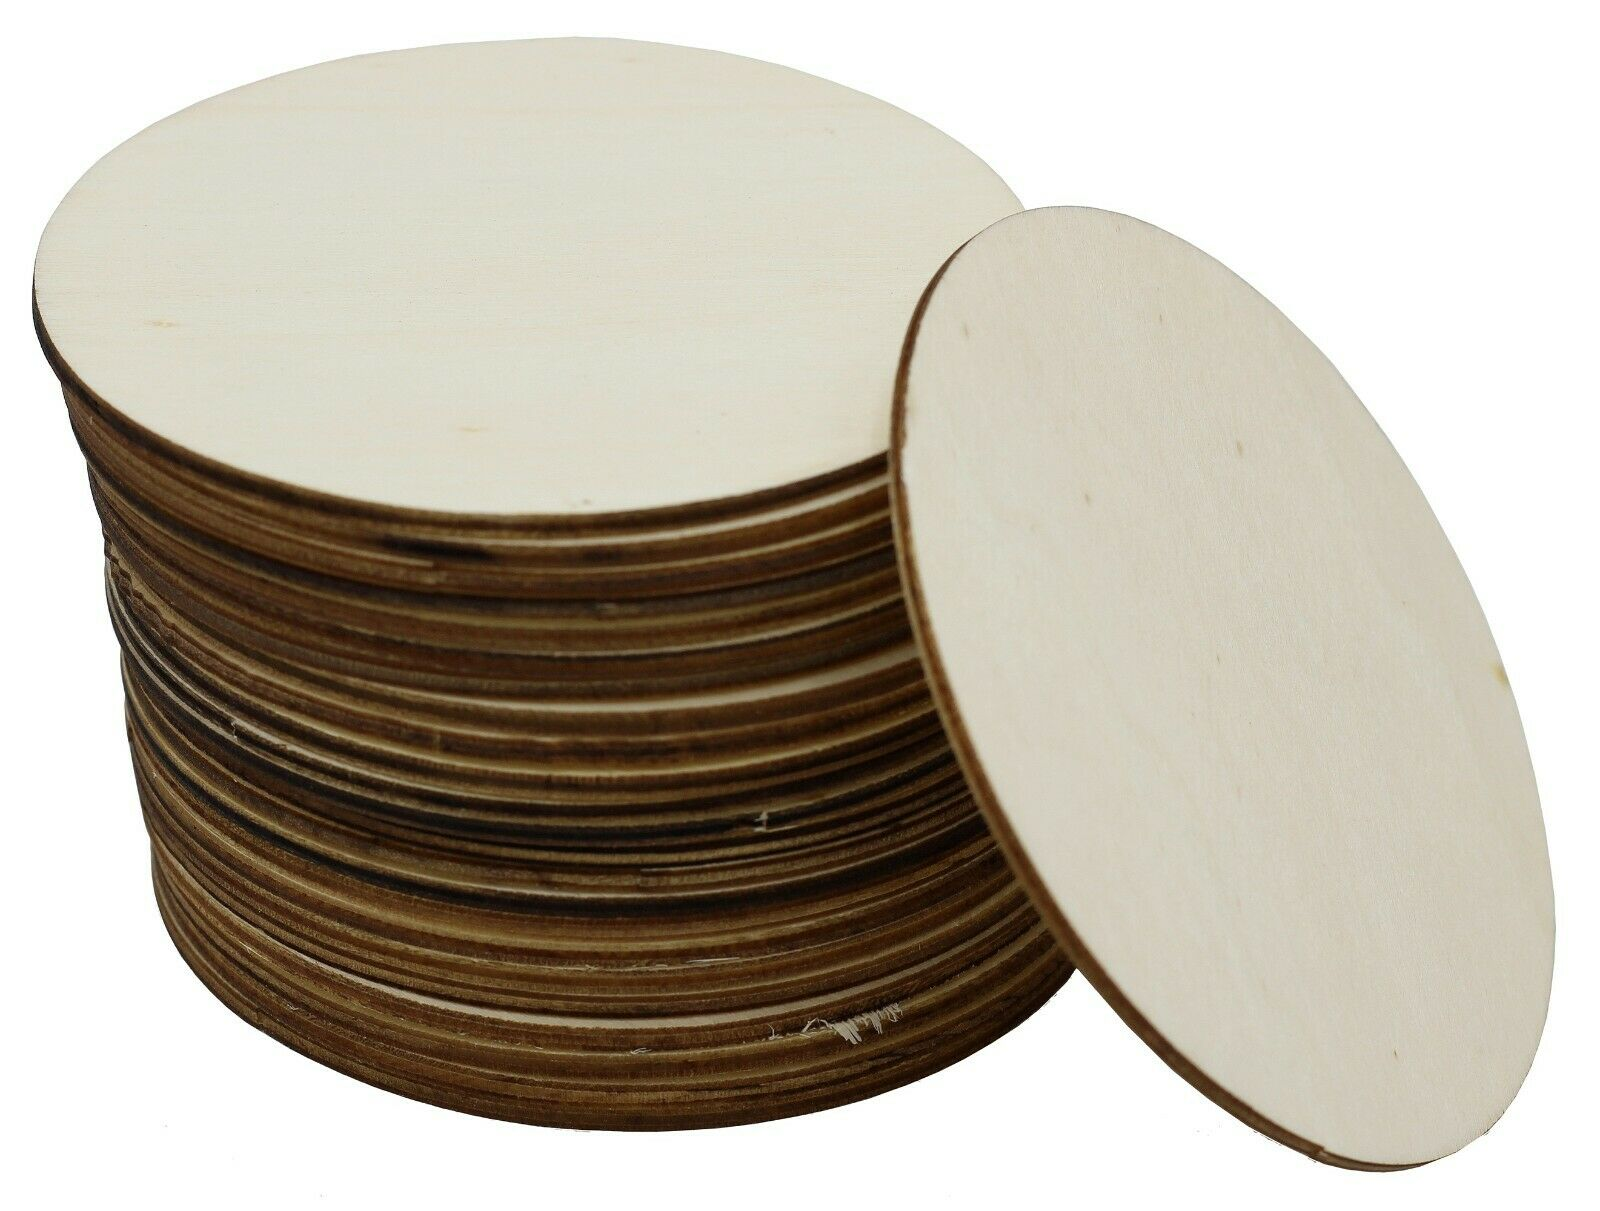 24-Pack Unfinished 4 Inch Wood Circle Cutouts for Crafts, Wooden Coasters, DIY Crafting Pieces